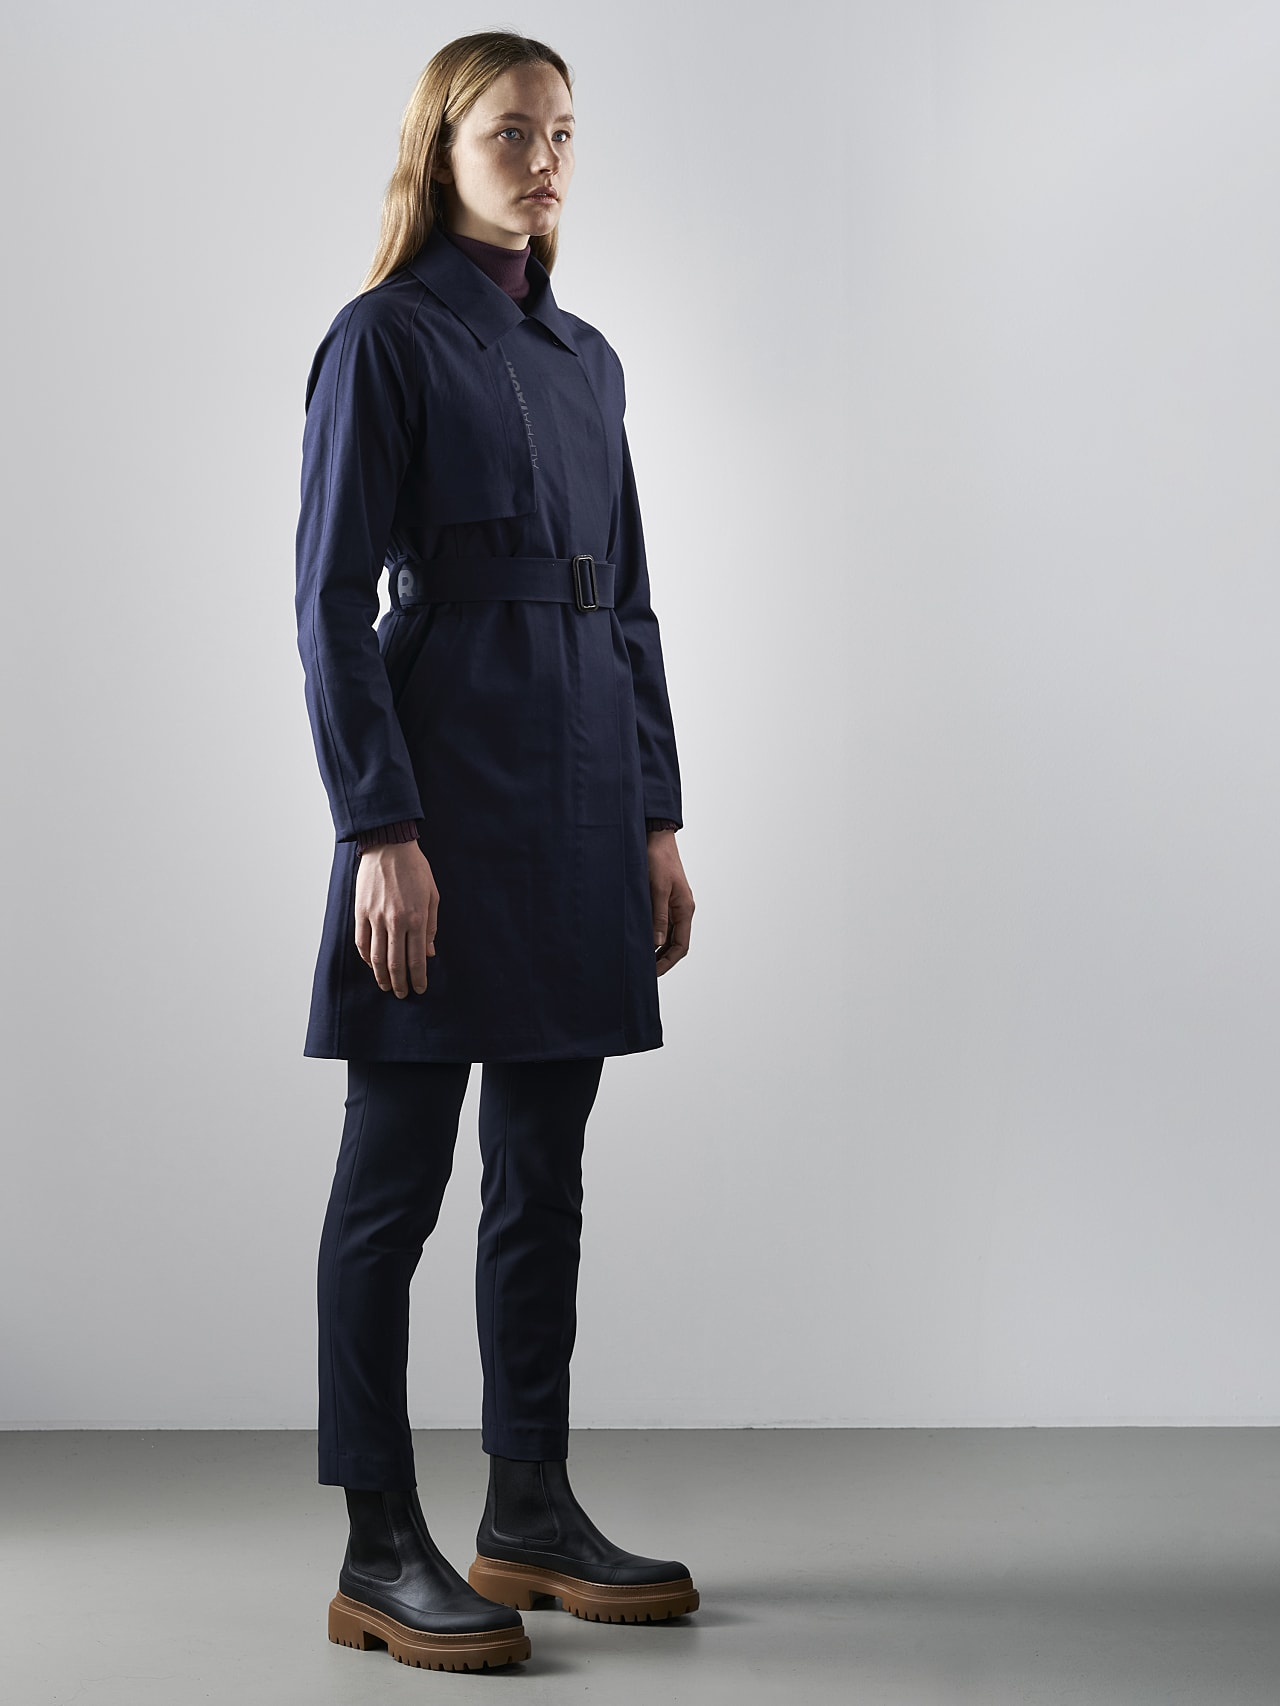 OMANI V1.Y5.02 Packable and Waterproof Trench Coat navy Front Alpha Tauri